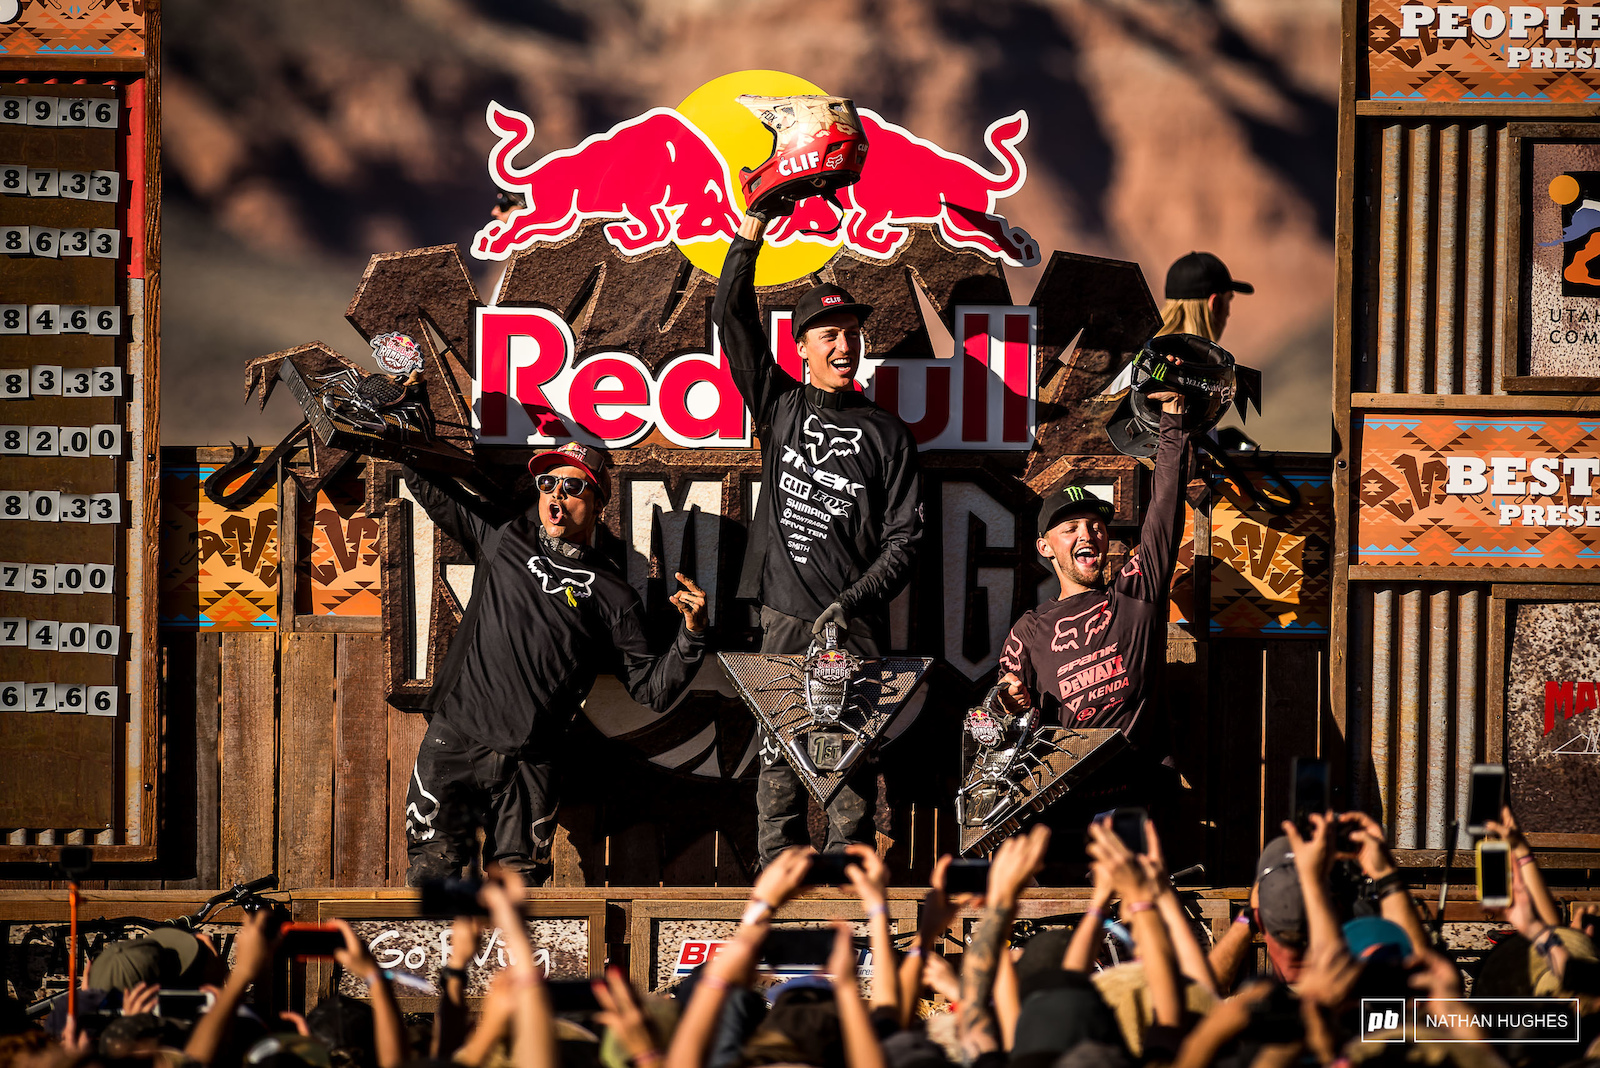 A full Fox podium of Rheeder Lacondeguy and Nell doing the business here at the 13th Rampage.